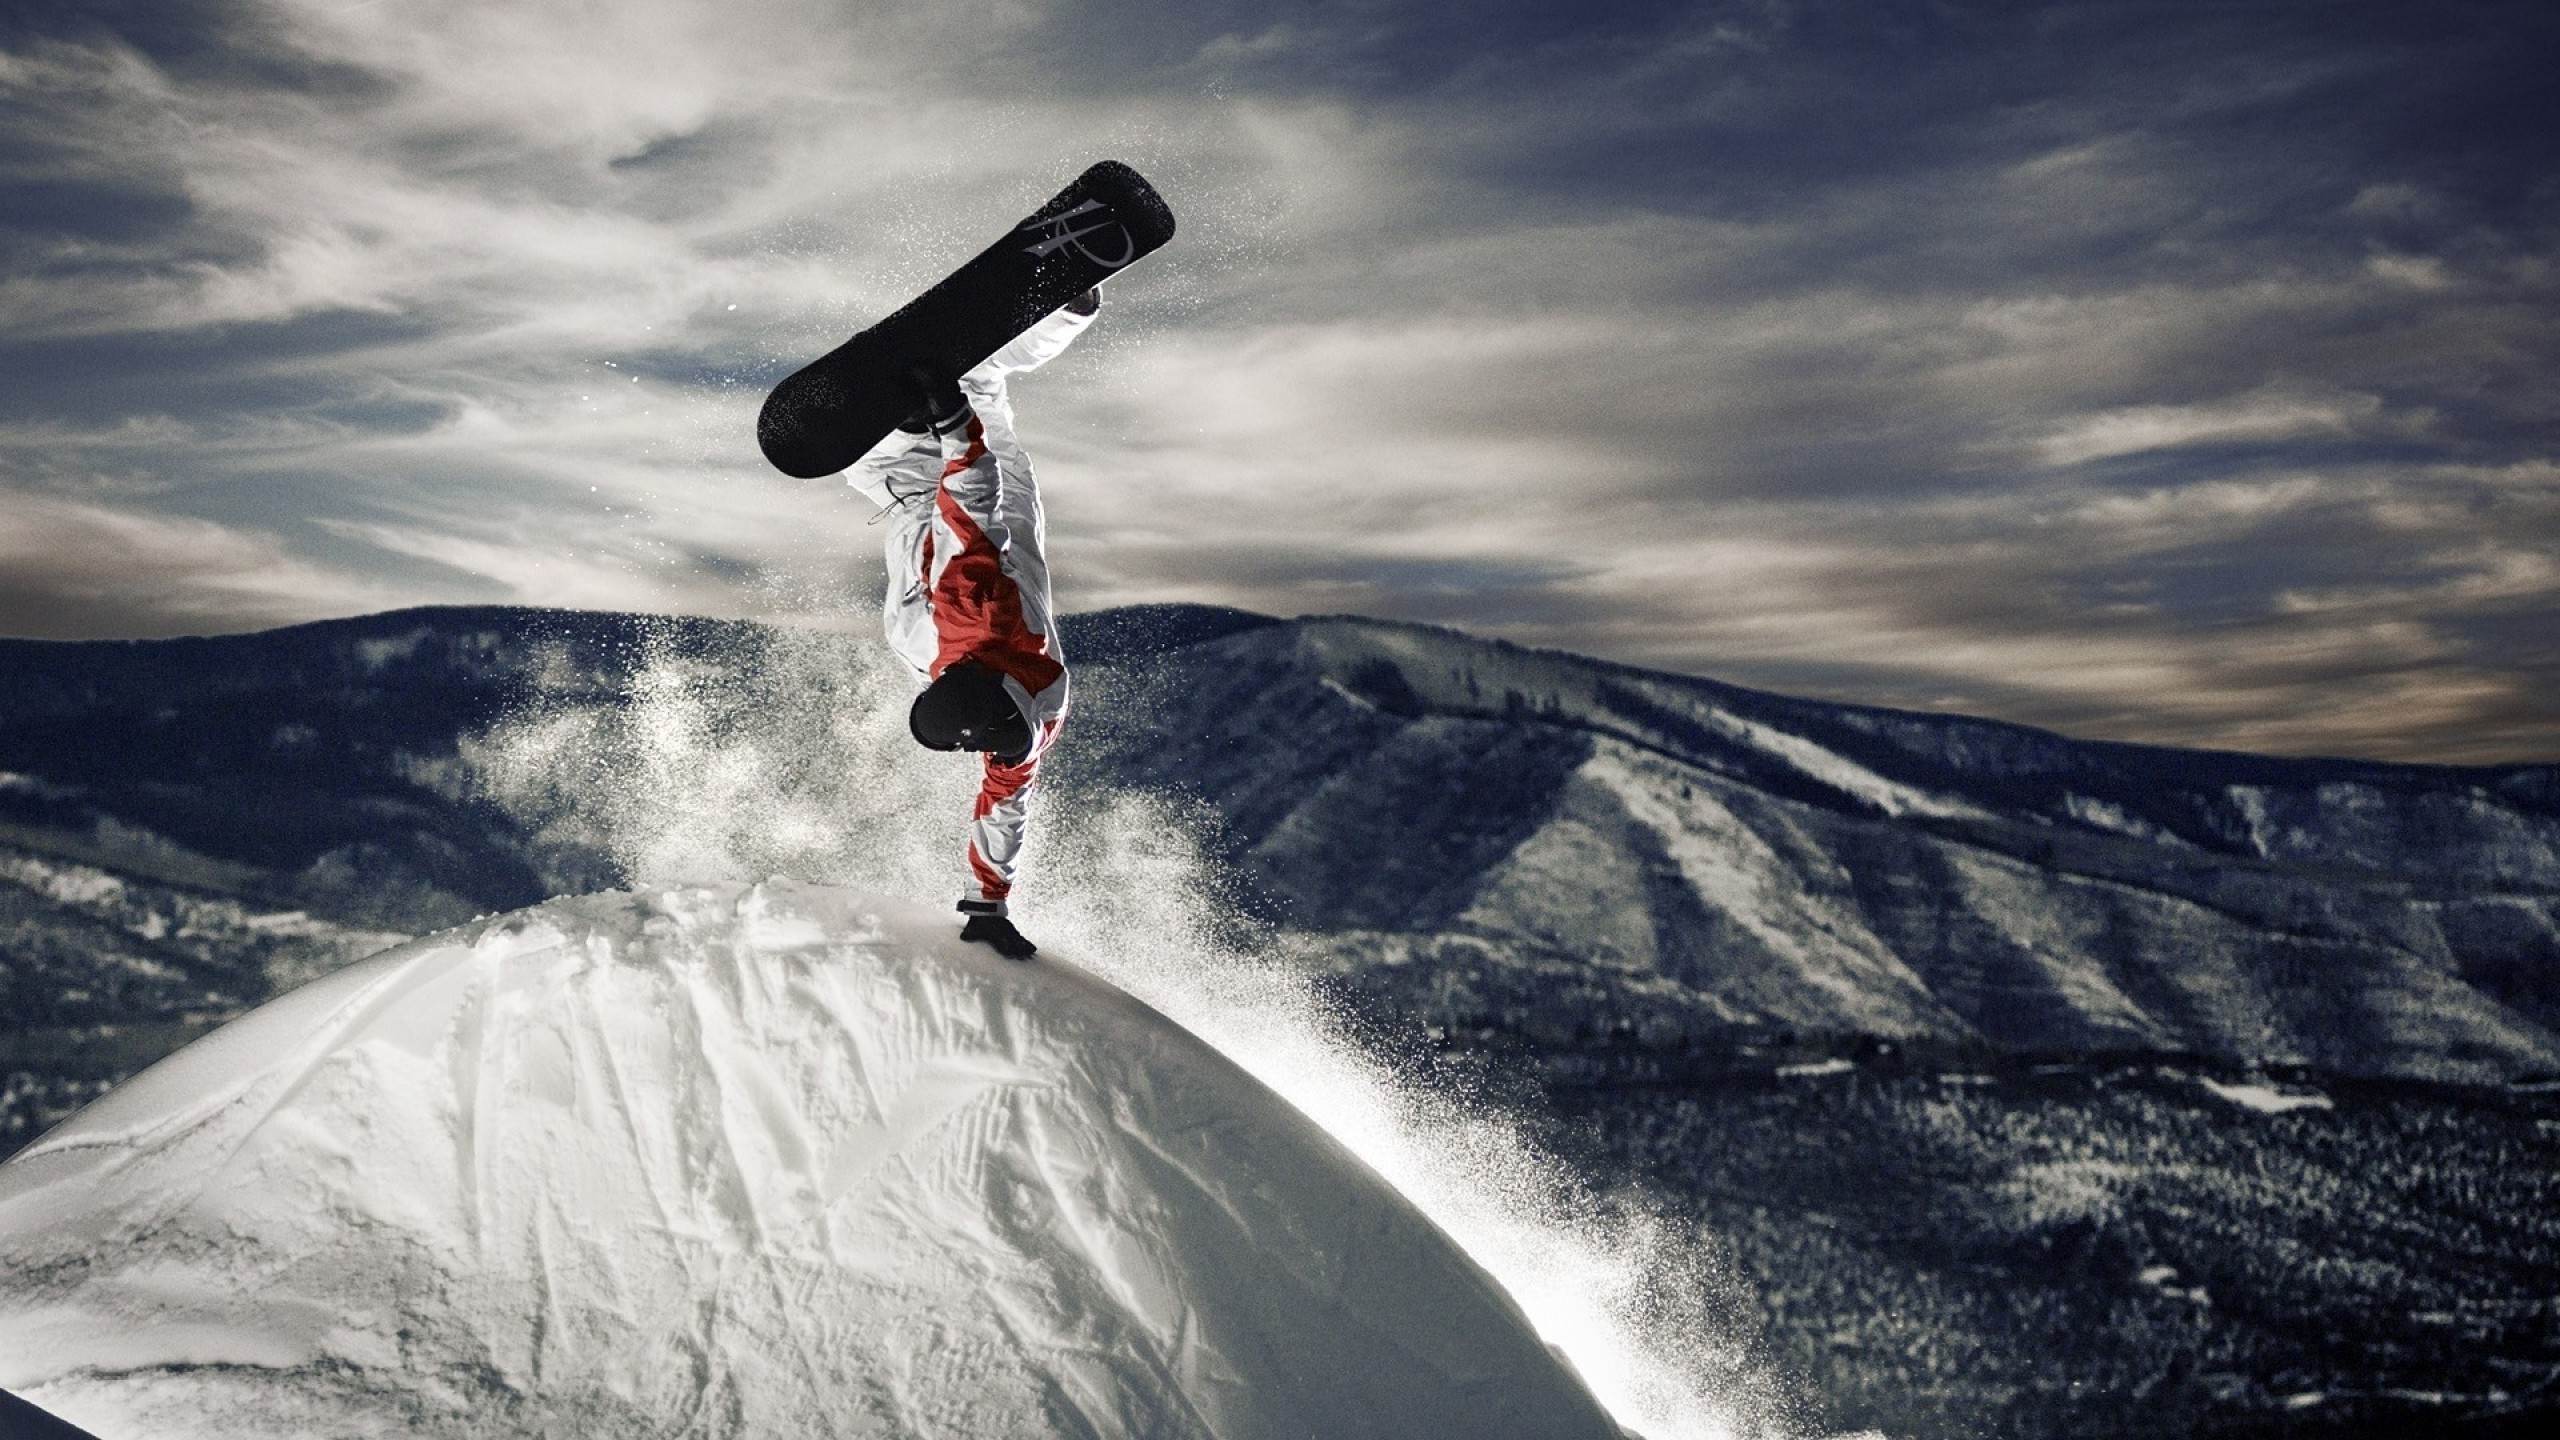 2560x1440 Snowboard Wallpaper